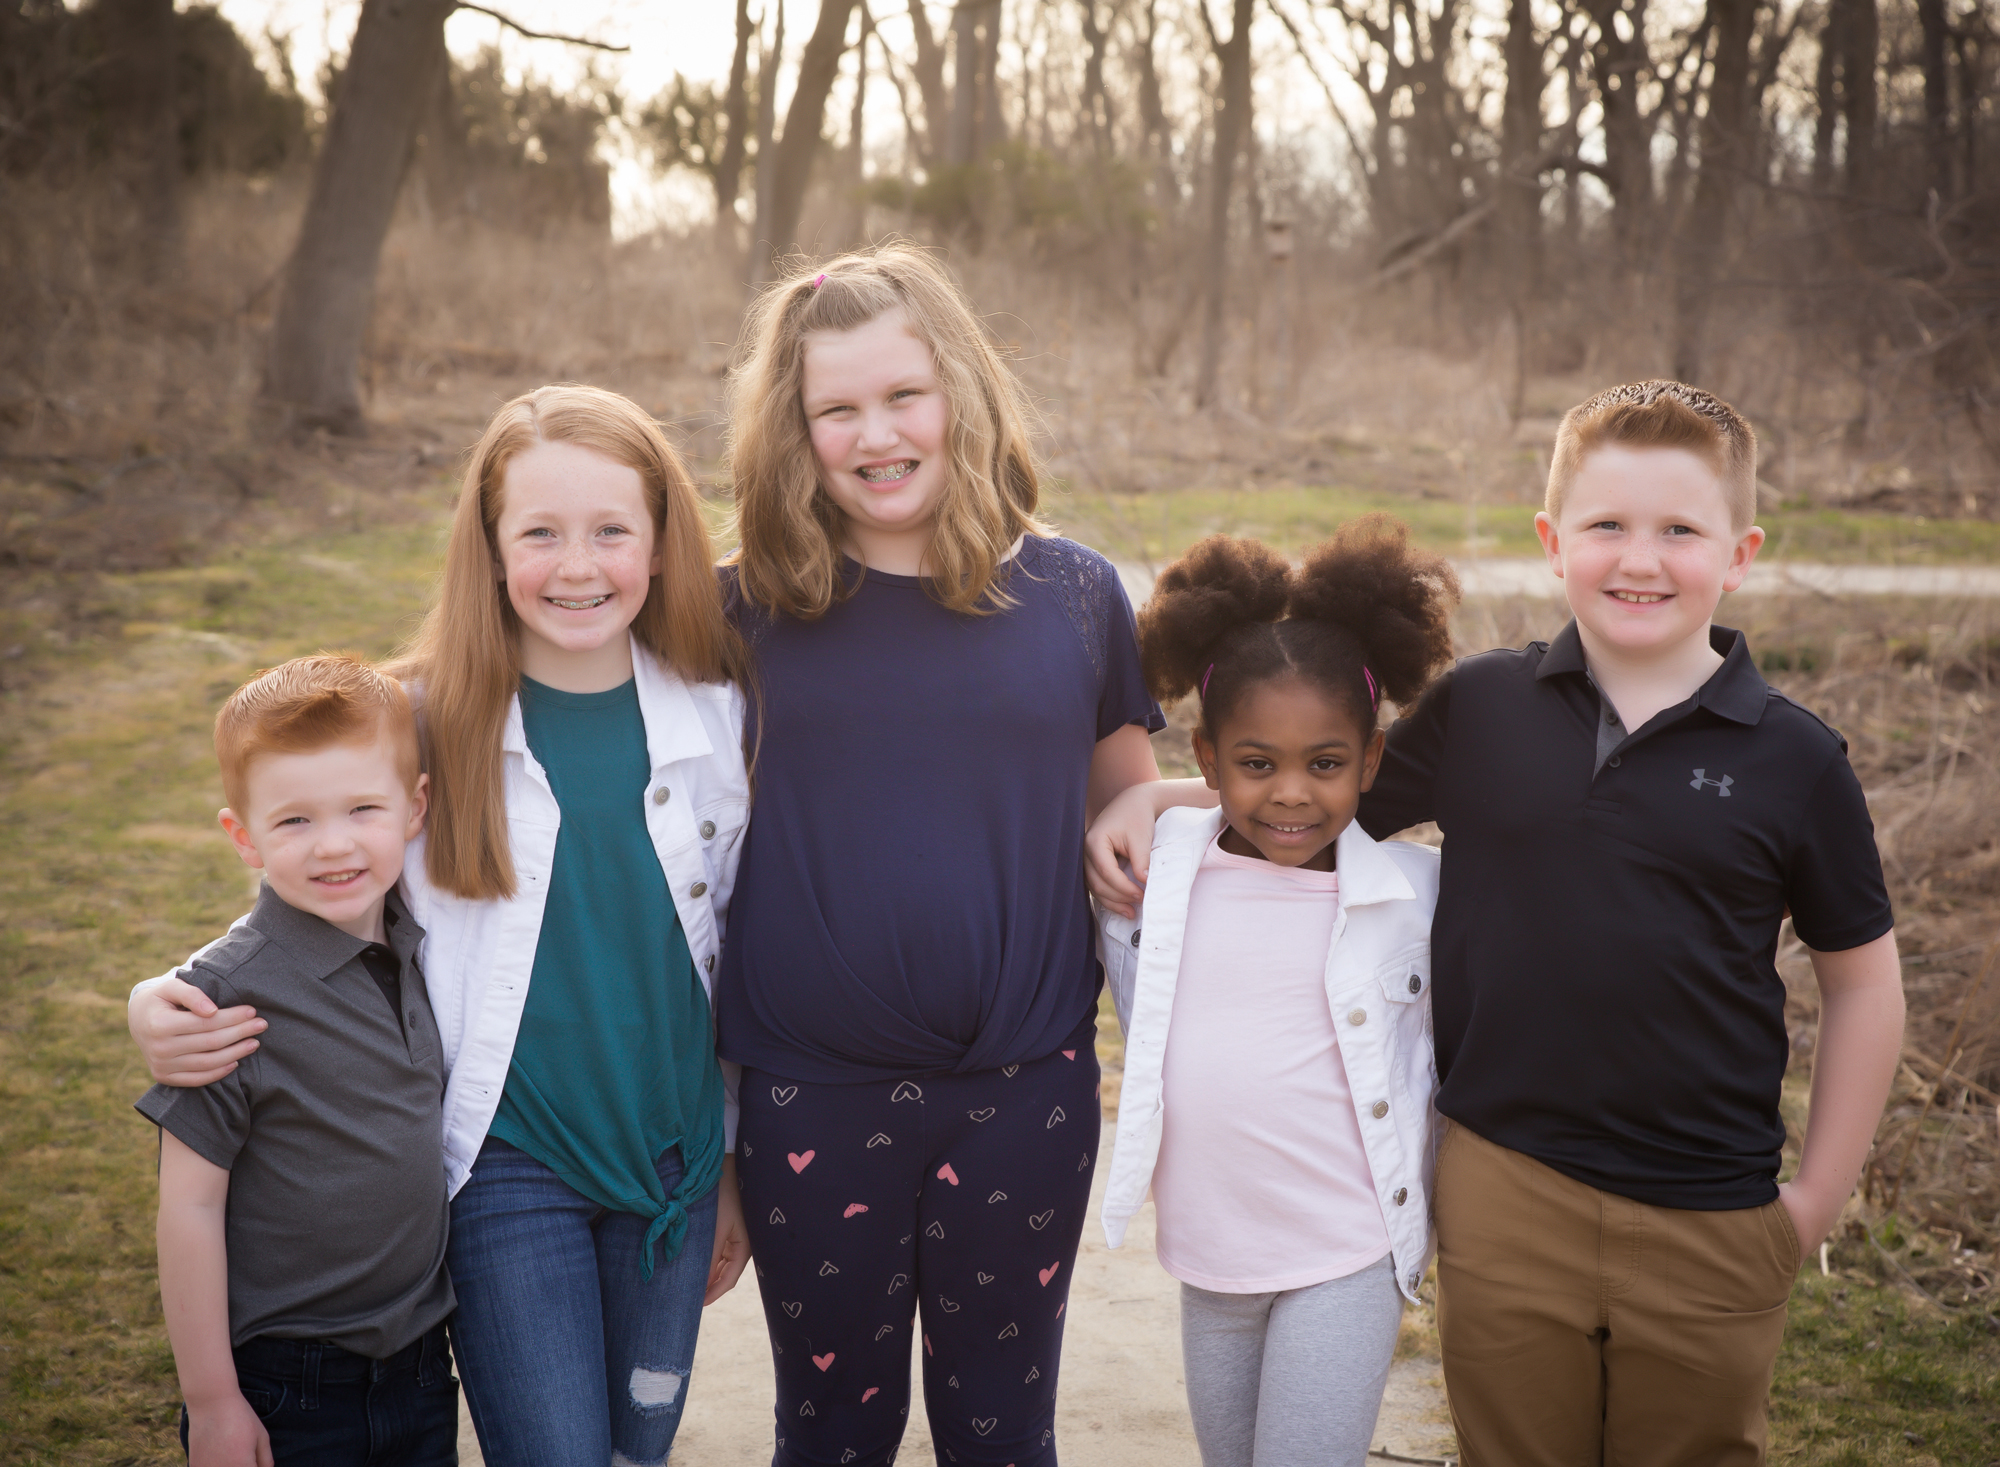 image-of-5-smiling-cousins-with-their-arms-around-eachother